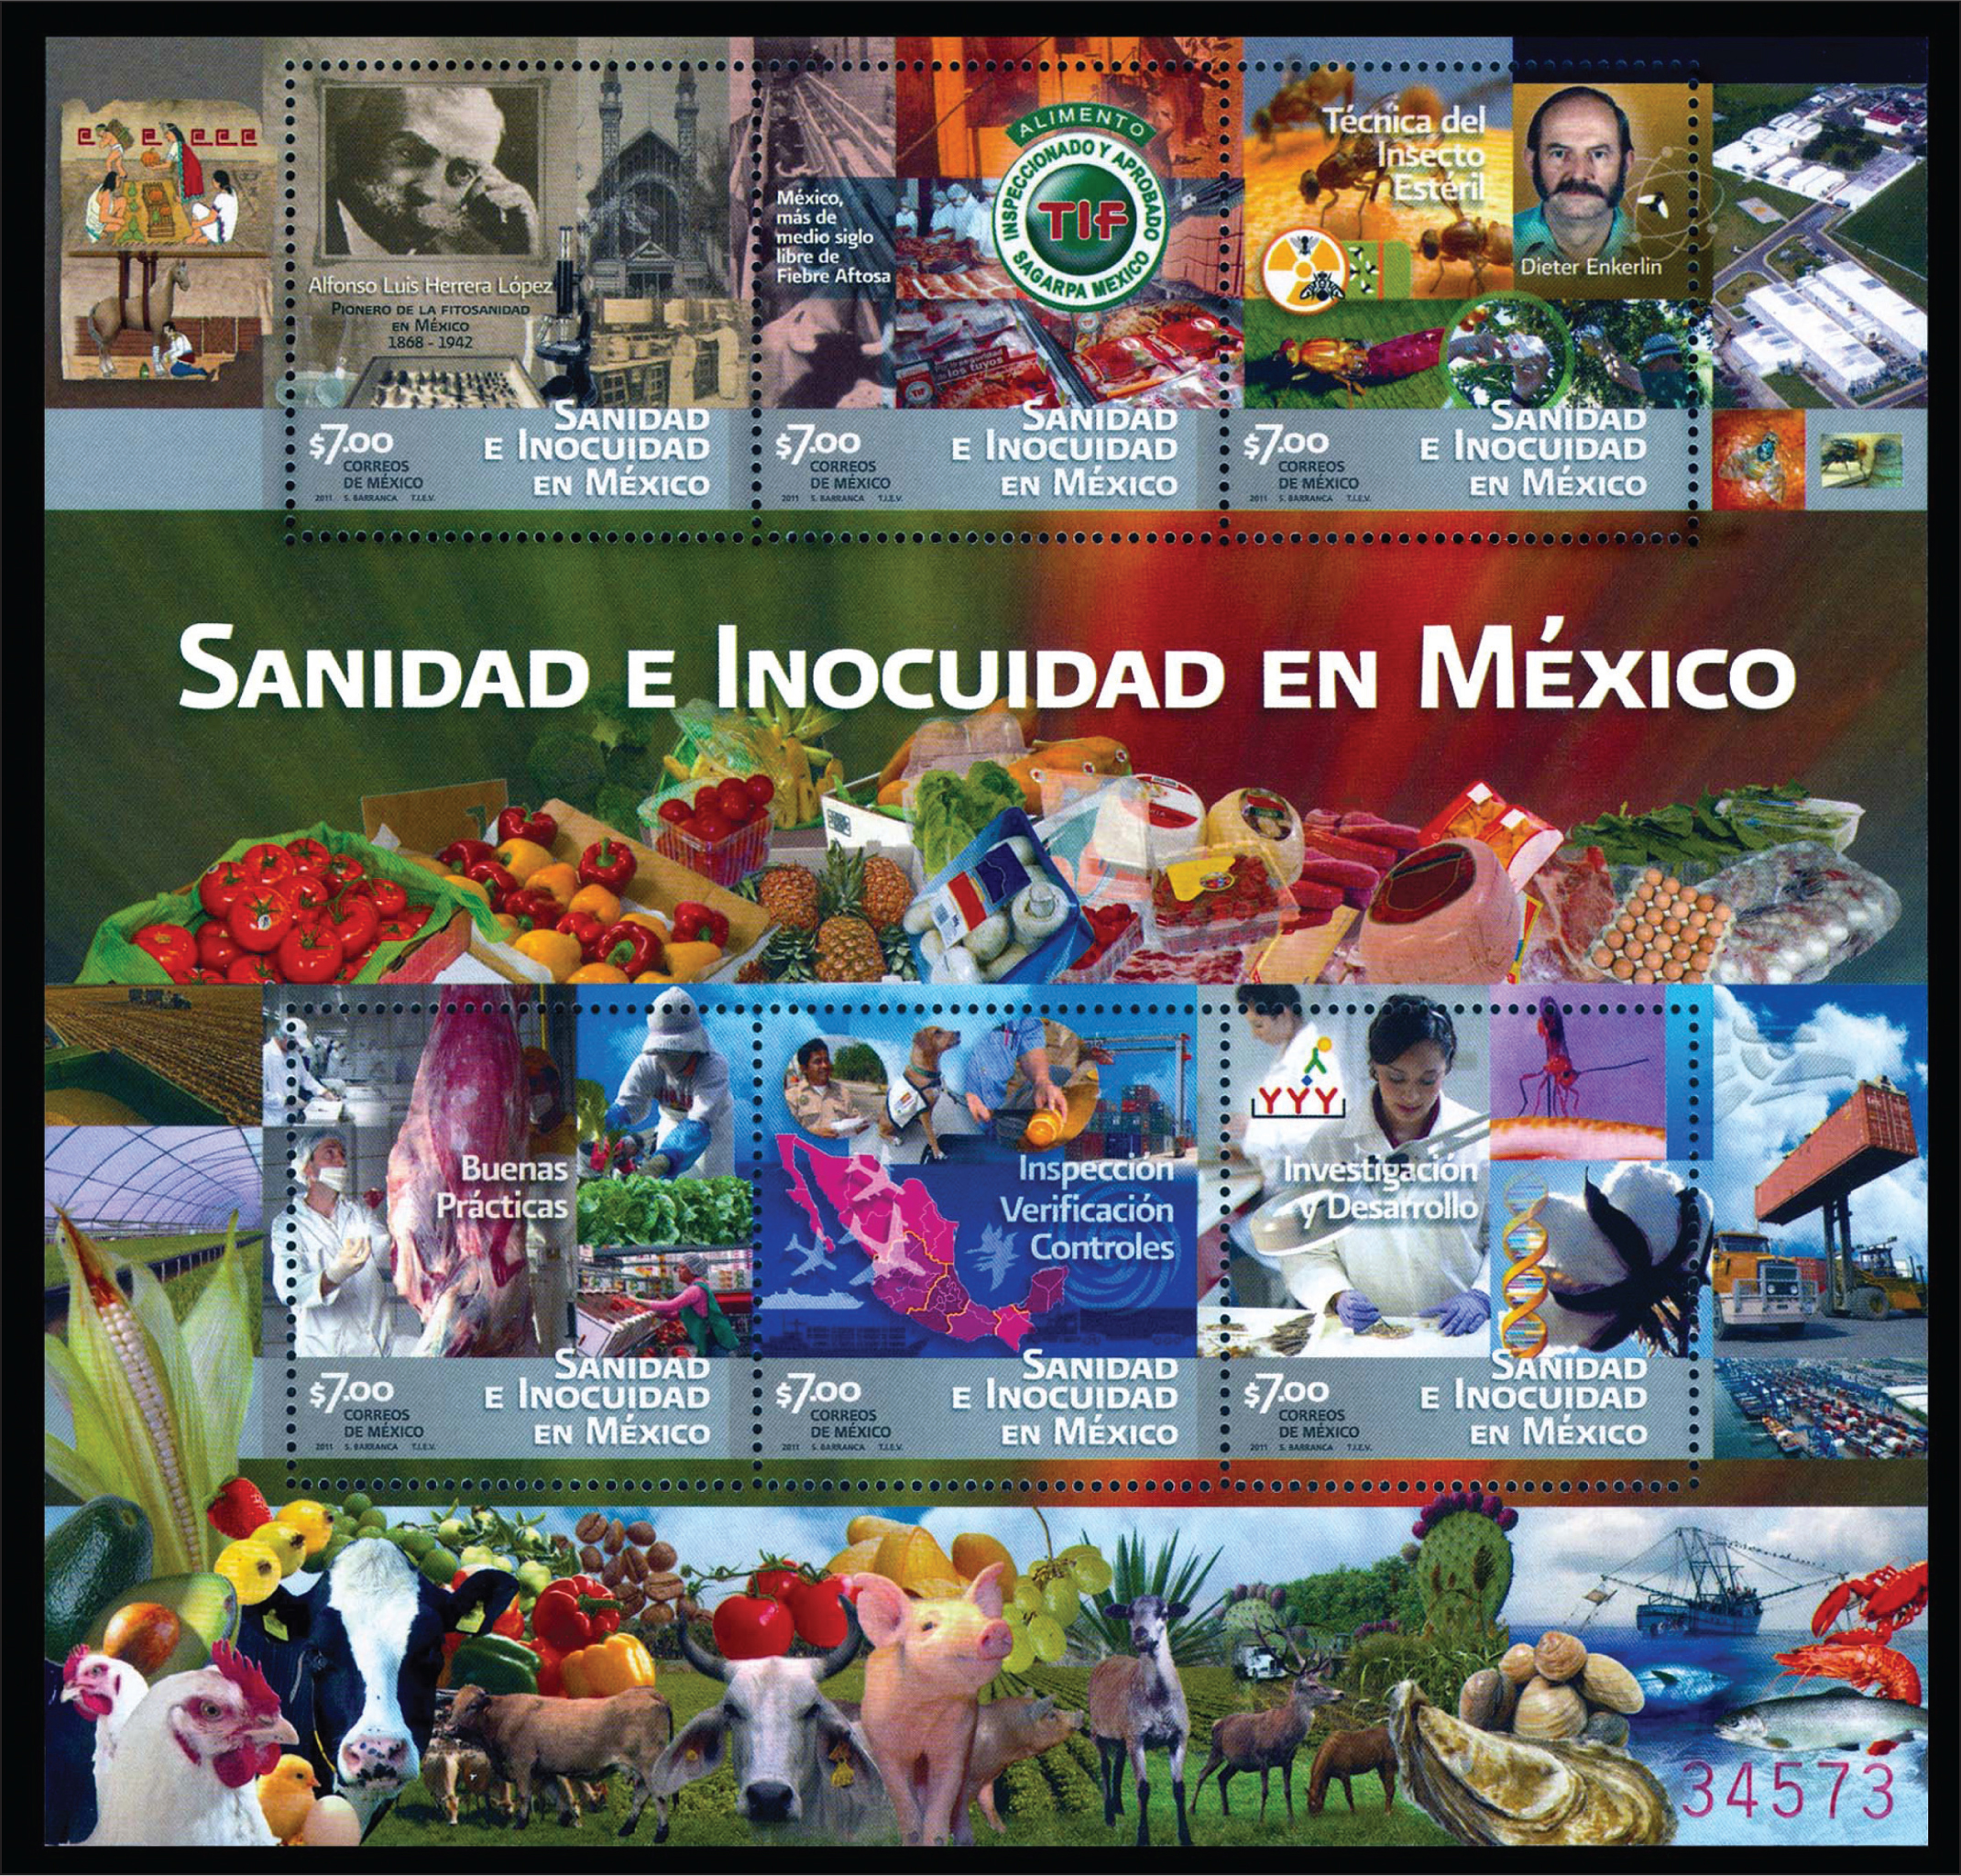 Souvenir sheet from Mexico issued in 2011 emphasizing health and safety in Mexico. The focus is primarily upon food safety.Image courtesy of Stanford T Shulman, MD